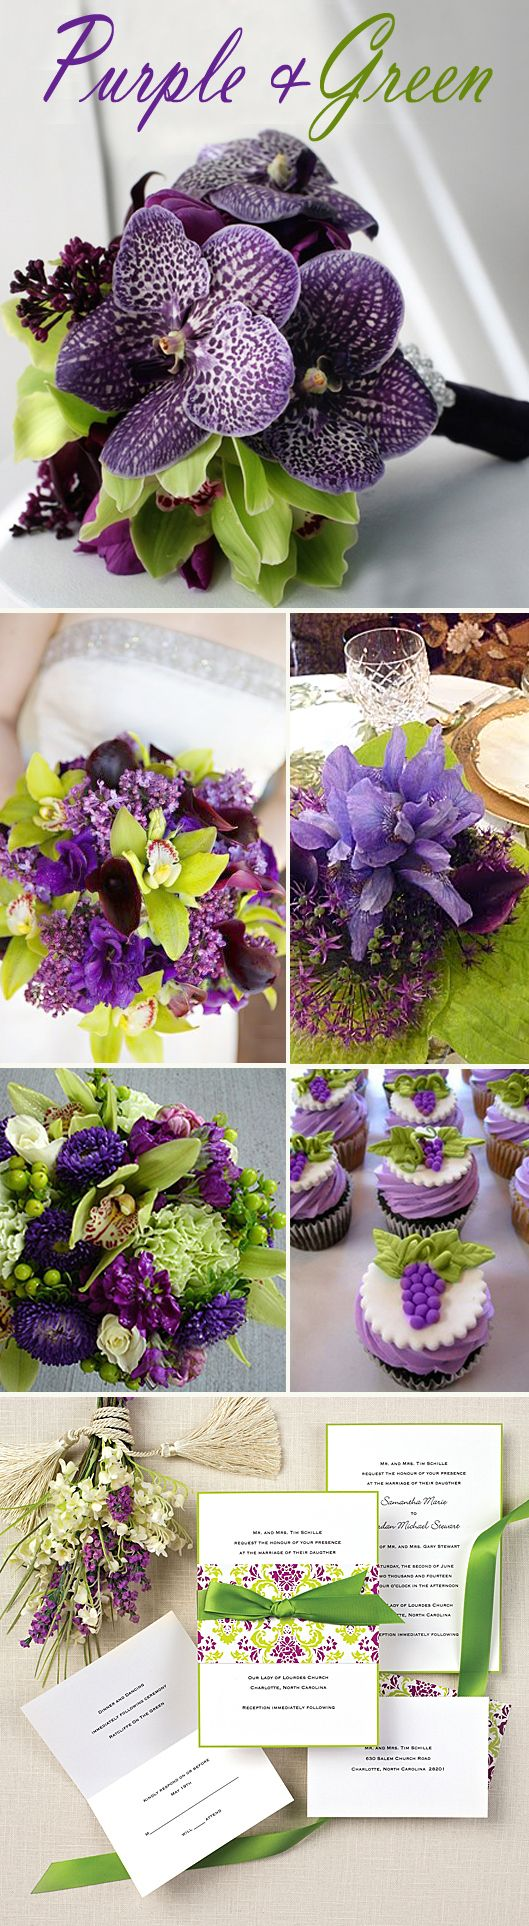 wedding cake   Exclusively Weddings Blog   Wedding Planning Tips and More